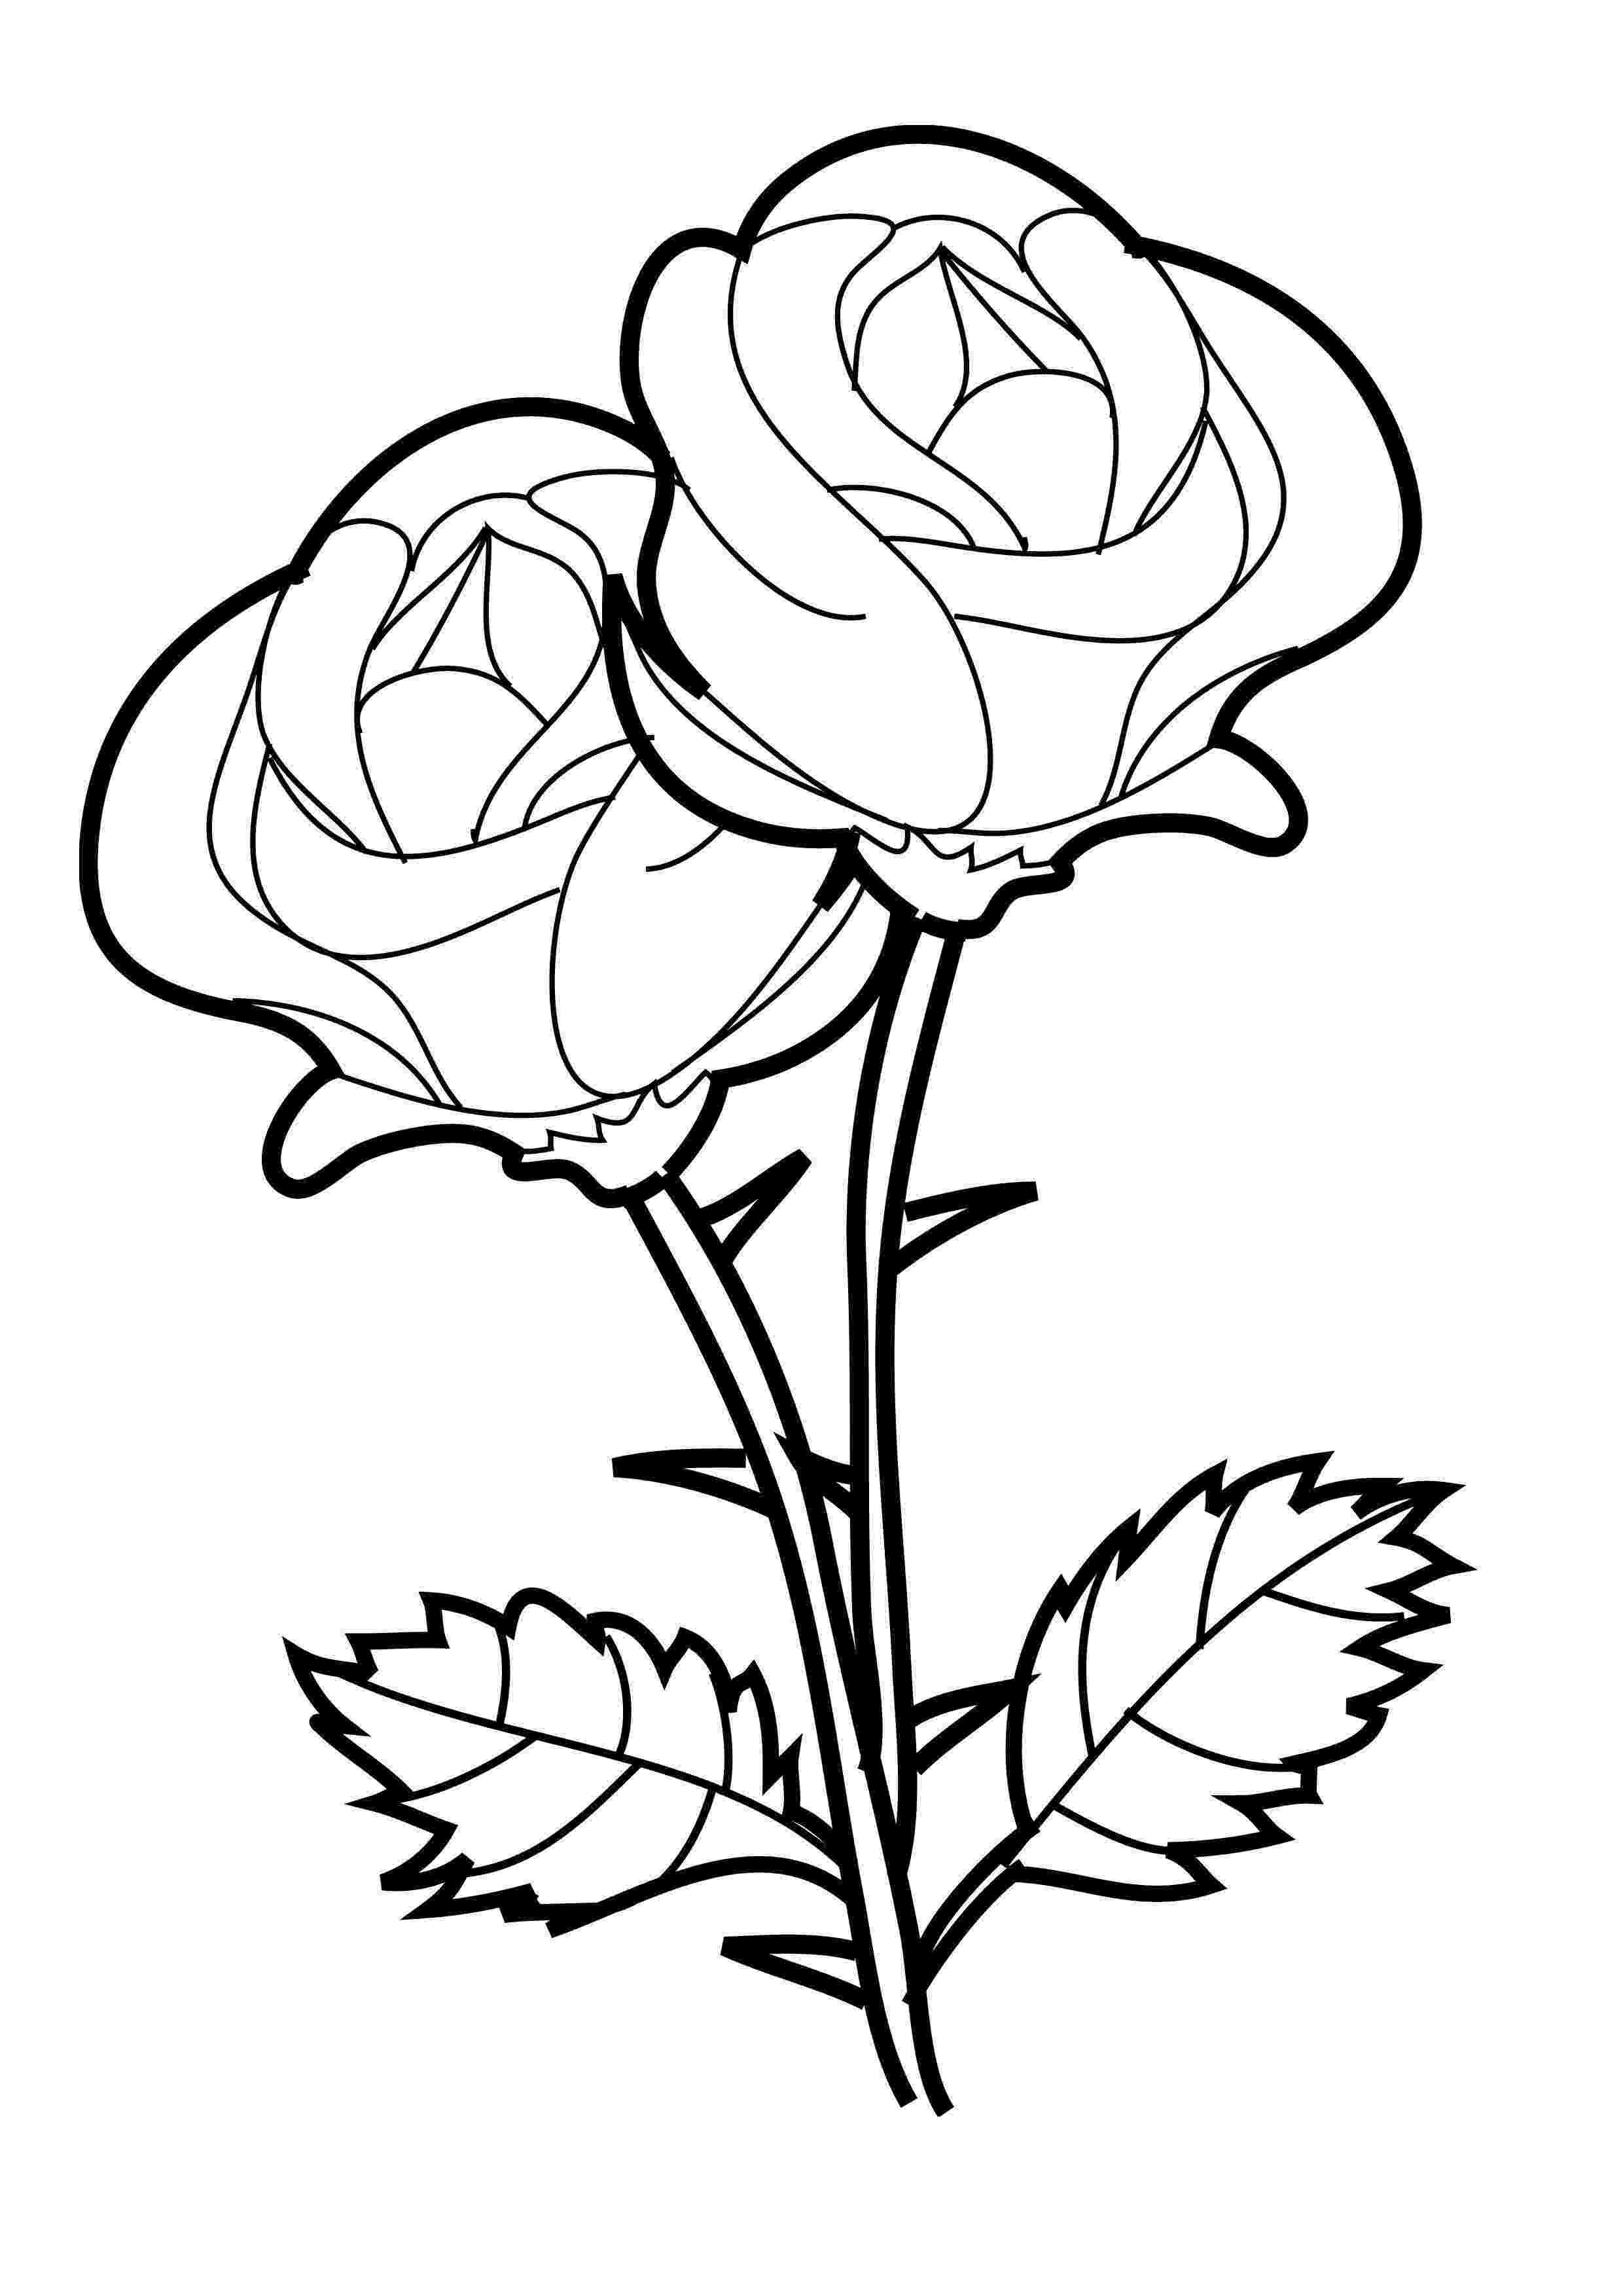 rose coloring pages printable printable rose coloring pages for kids cool2bkids pages rose printable coloring